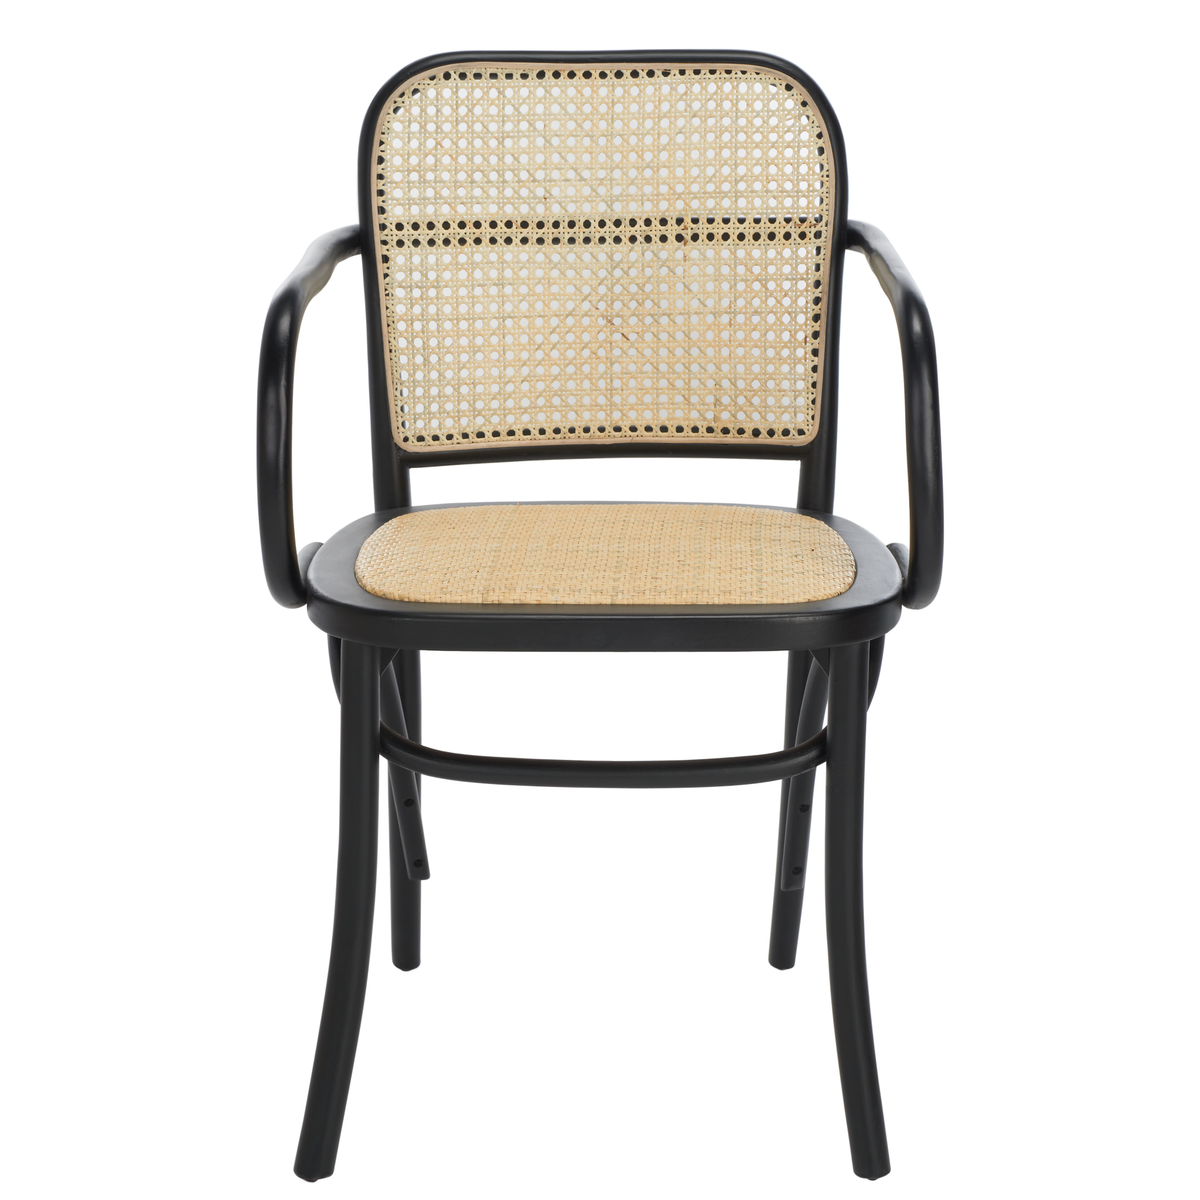 Black & Natural Keiko Cane Dining Chair